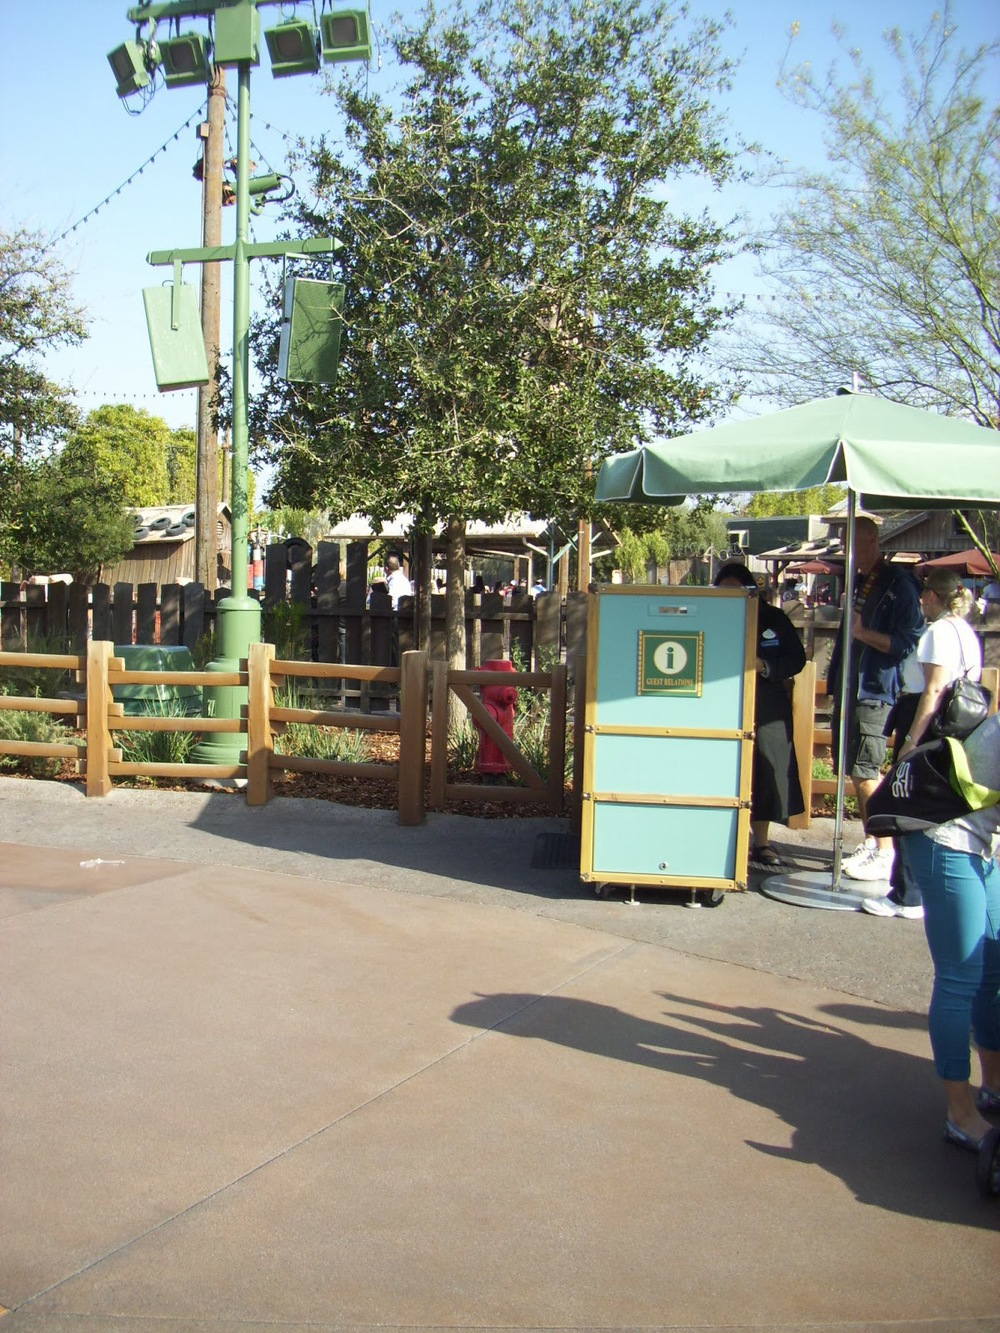 Entrance of cars land Kiosk